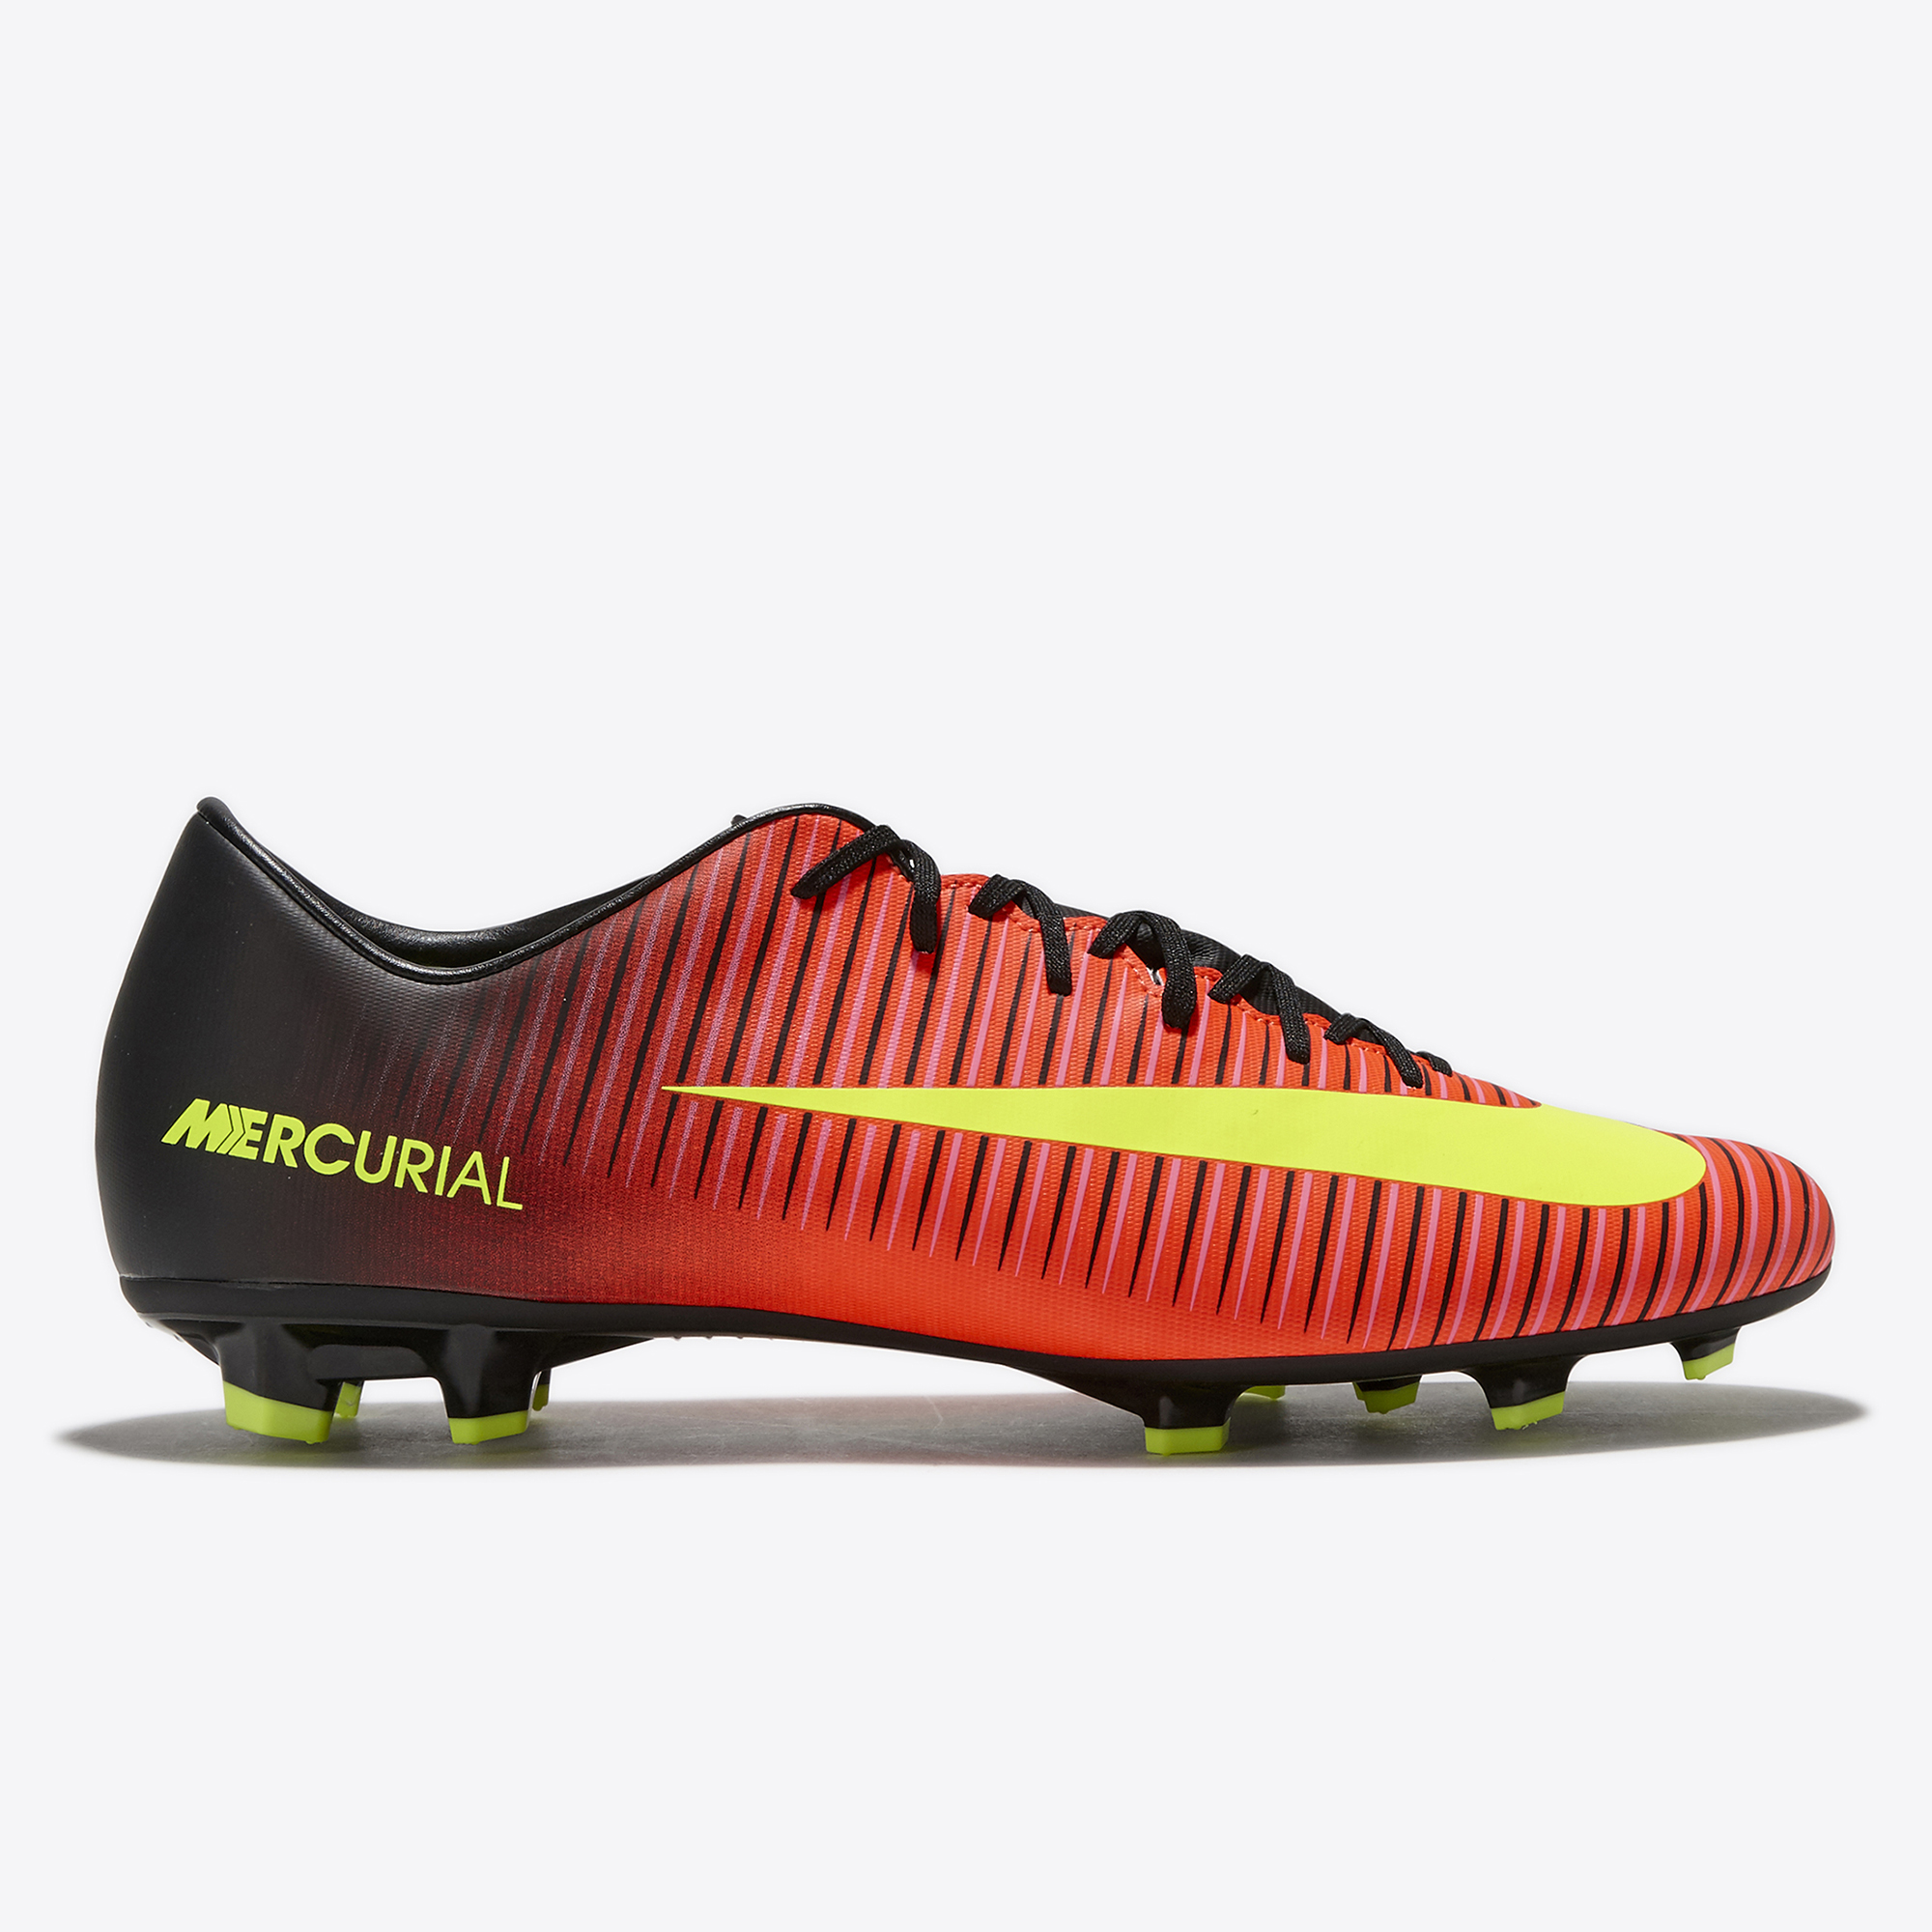 Nike Mercurial Victory VI Firm Ground Football Boots - Total Crimson/V